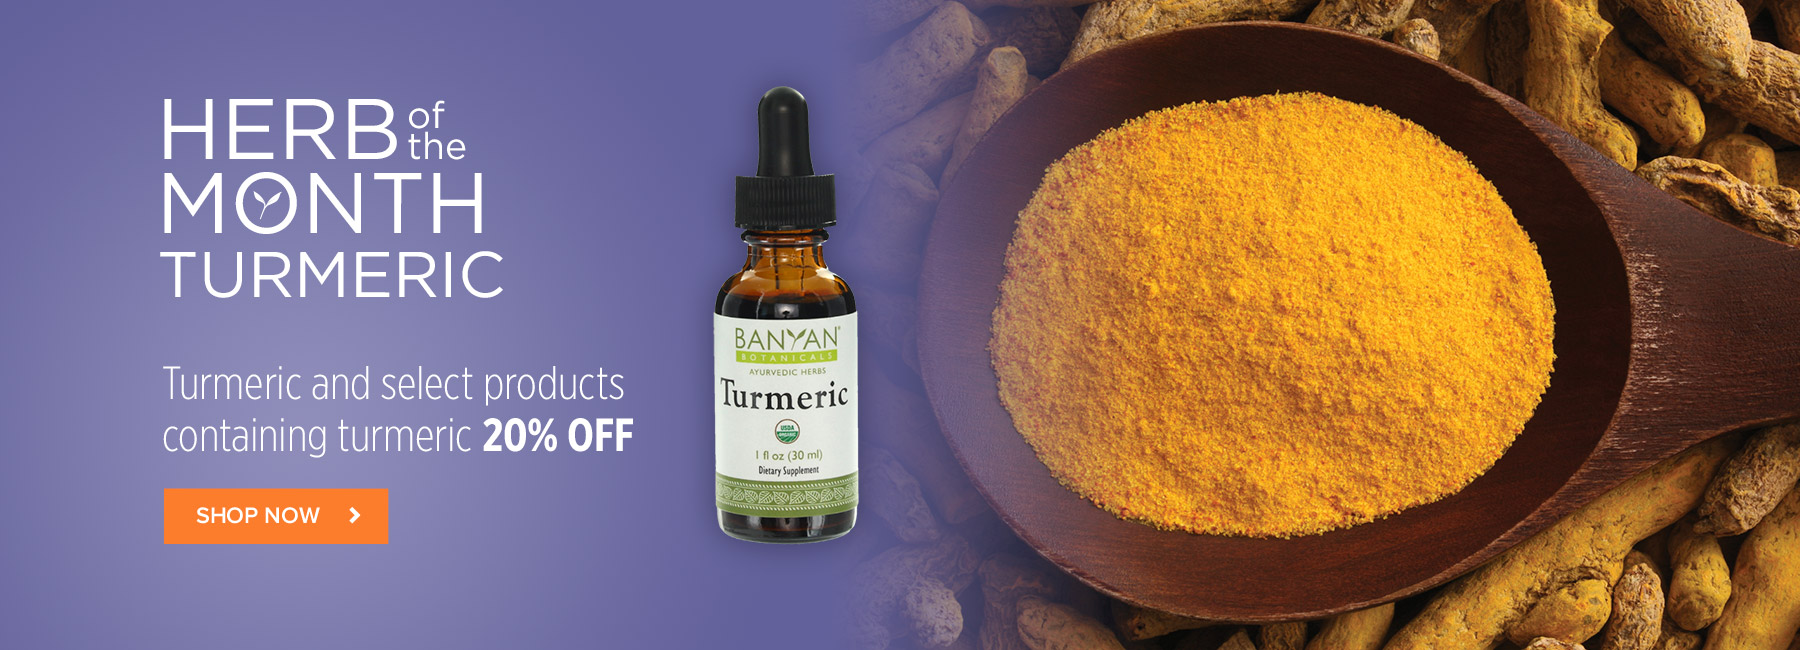 Herb of the Month Turmeric - Save 20% off Turmeric and select products containing Turmeric